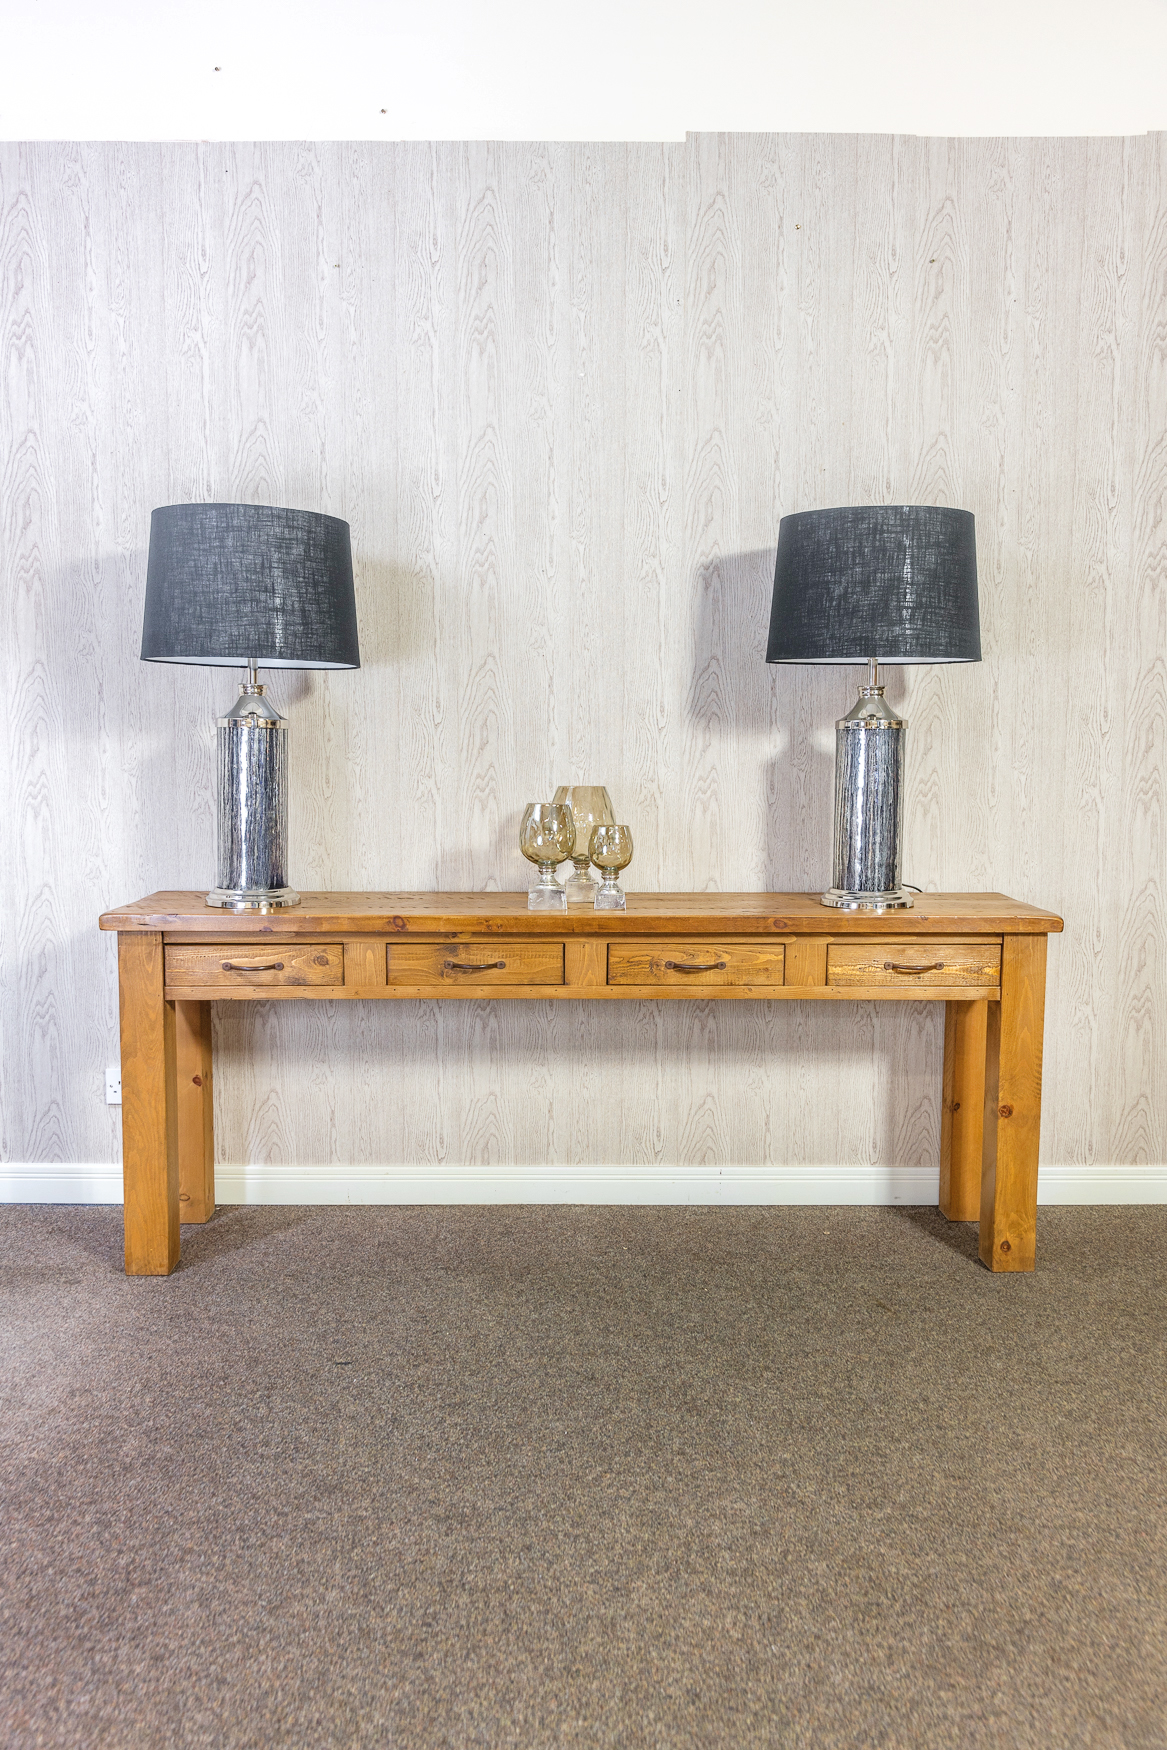 RUSTIC Large 4 Drawer Console Table